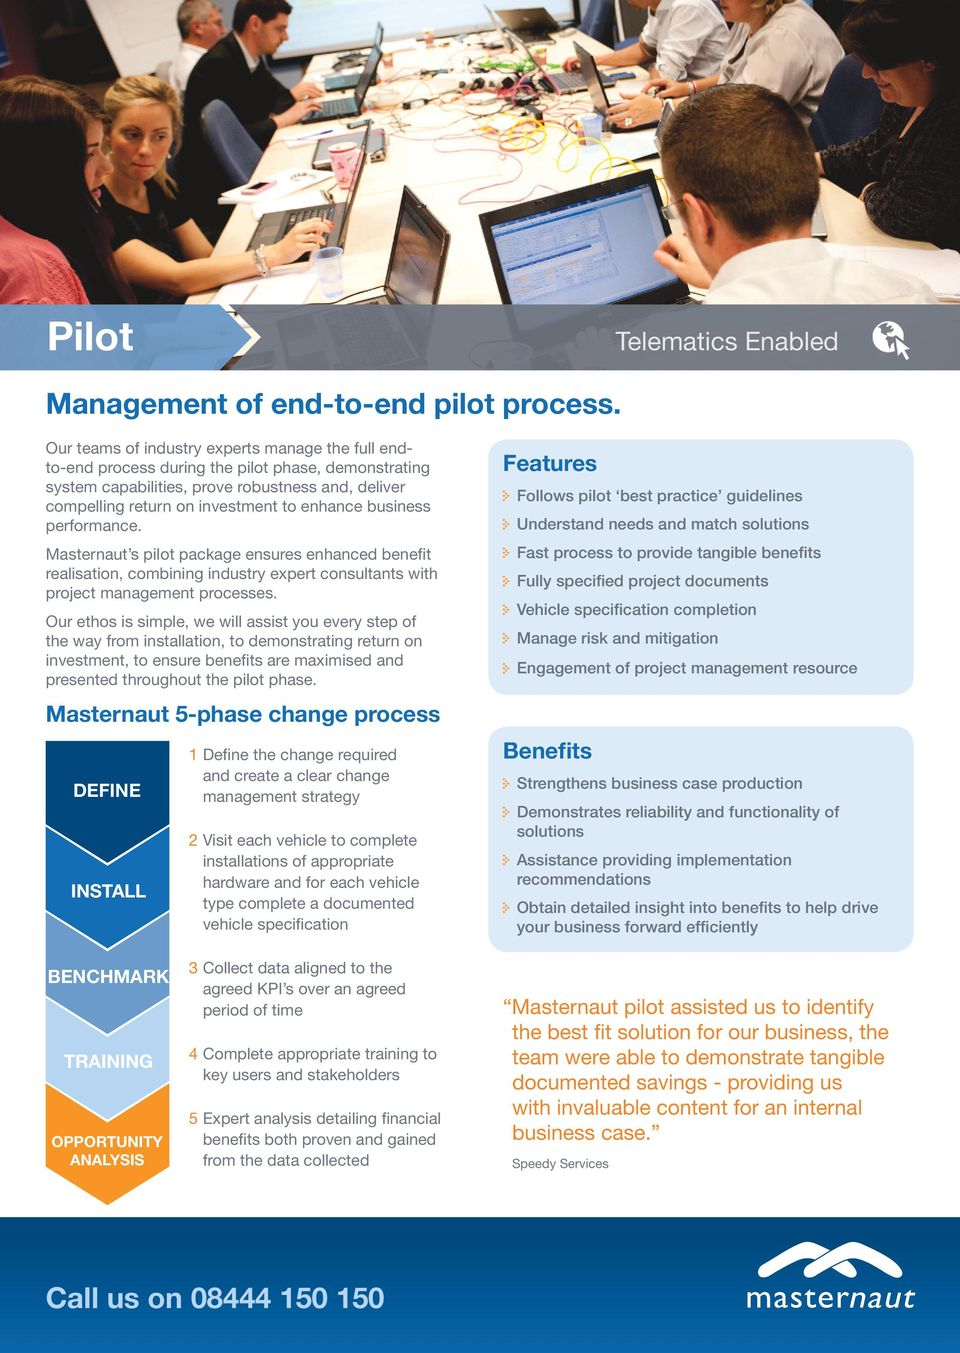 business performance. Masternaut s pilot package ensures enhanced benefit realisation, combining industry expert consultants with project management processes.